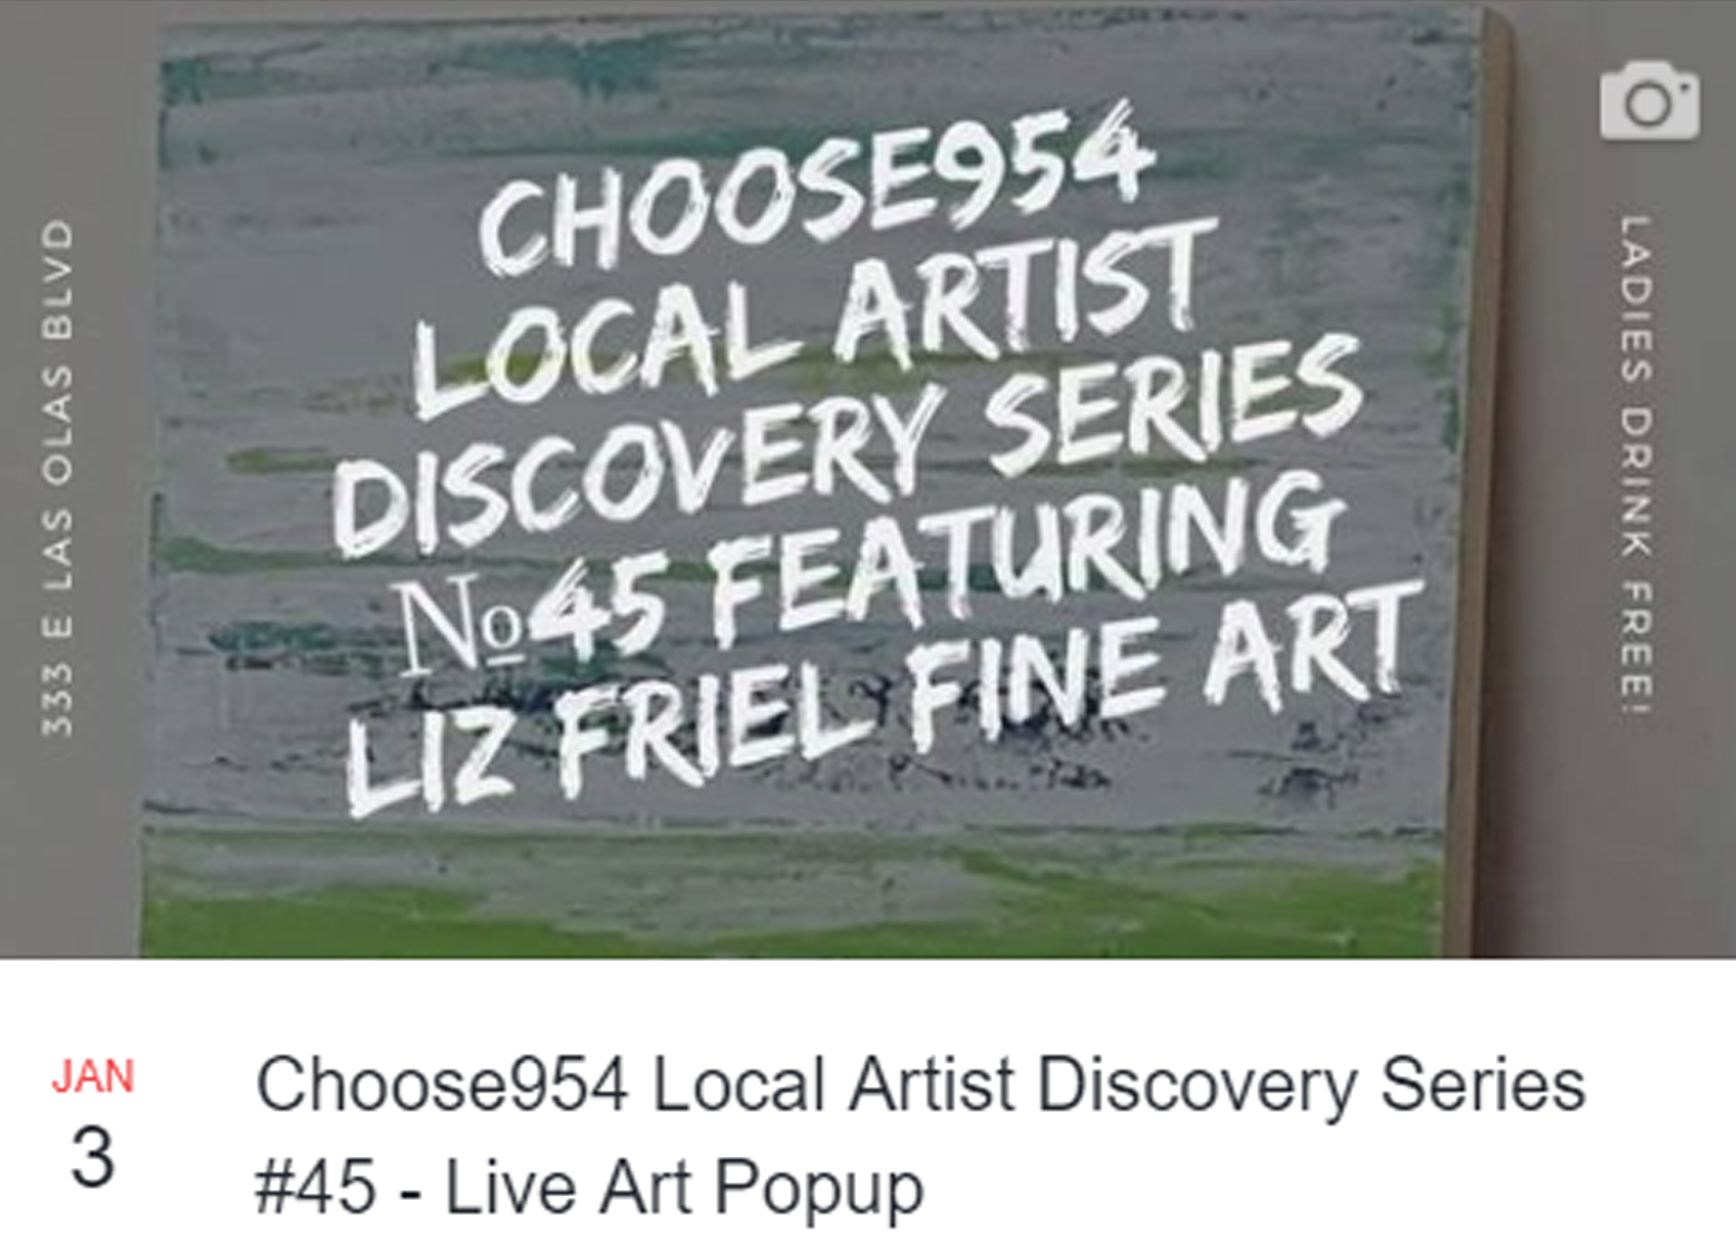 Live Painting Event!   - Local Artist Discovery Series - Artist #45 and the first of the new year! January 3rd I painted live at a local chic restaurant lounge called YOLO outside. Florida during winter is usually still warm. Not this past week! So it was ironic and it felt like a challenge to see how I would handle painting with mixed acrylics outdoors, in the cold weather. Brr. Somewhere in the 50's in south Fl.It went just fine. t went great! Fun and exciting thanks to Choose954.com, YOLO Restaurant and Evan Snow of Fort Lauderdale, FL.New paintings were started on canvas and another on gesso board. Follow my blog or social media to see how they progress.Available to purchase.Yolo. You only live once!